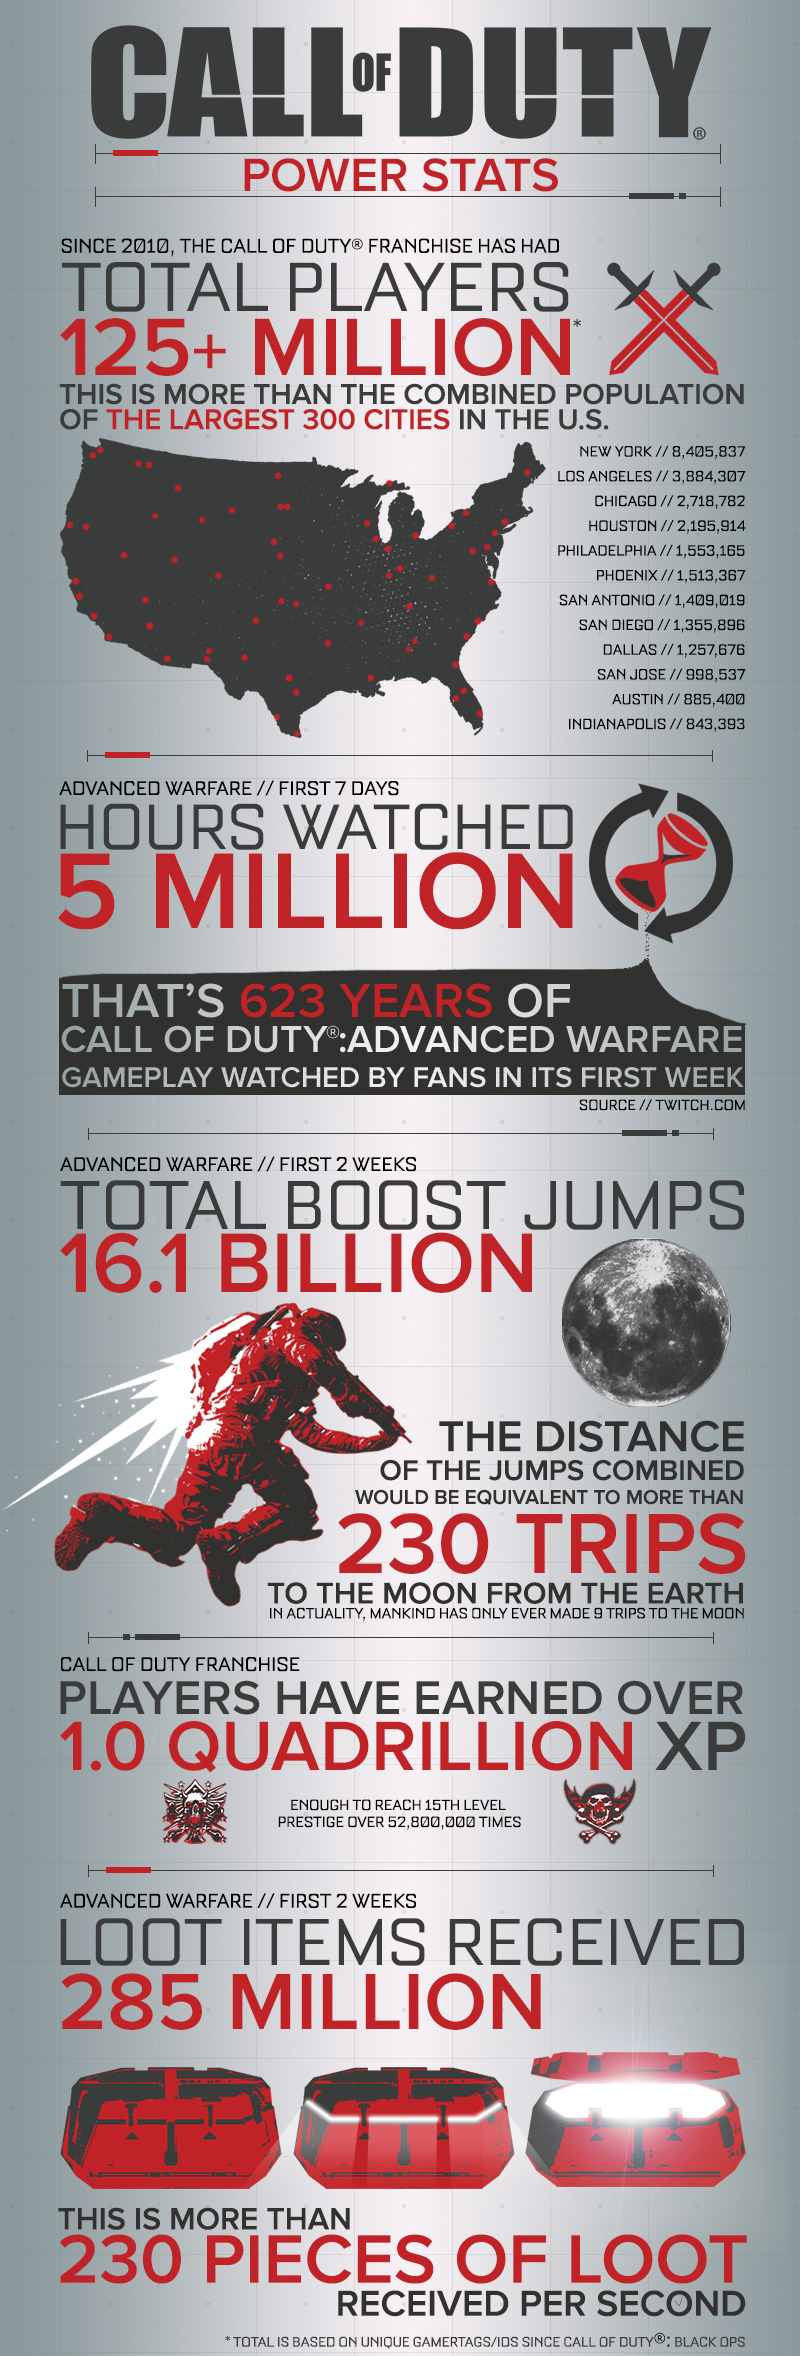 Call of Duty: Advanced Warfare infographic